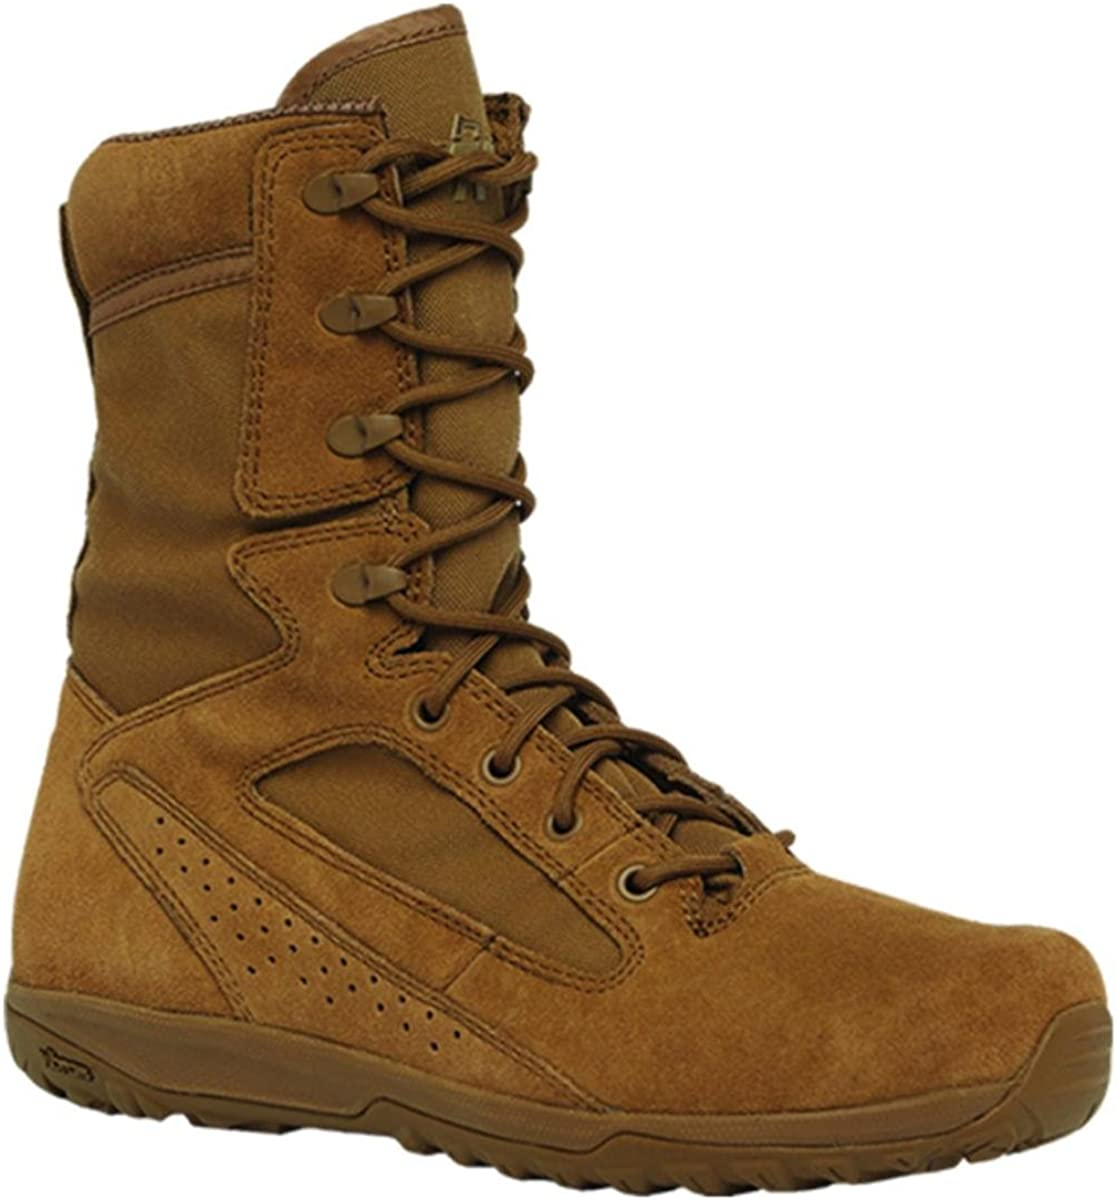 Tactical Research Belleville TR511 Mini-Mil Transition Boot Coyote Brown